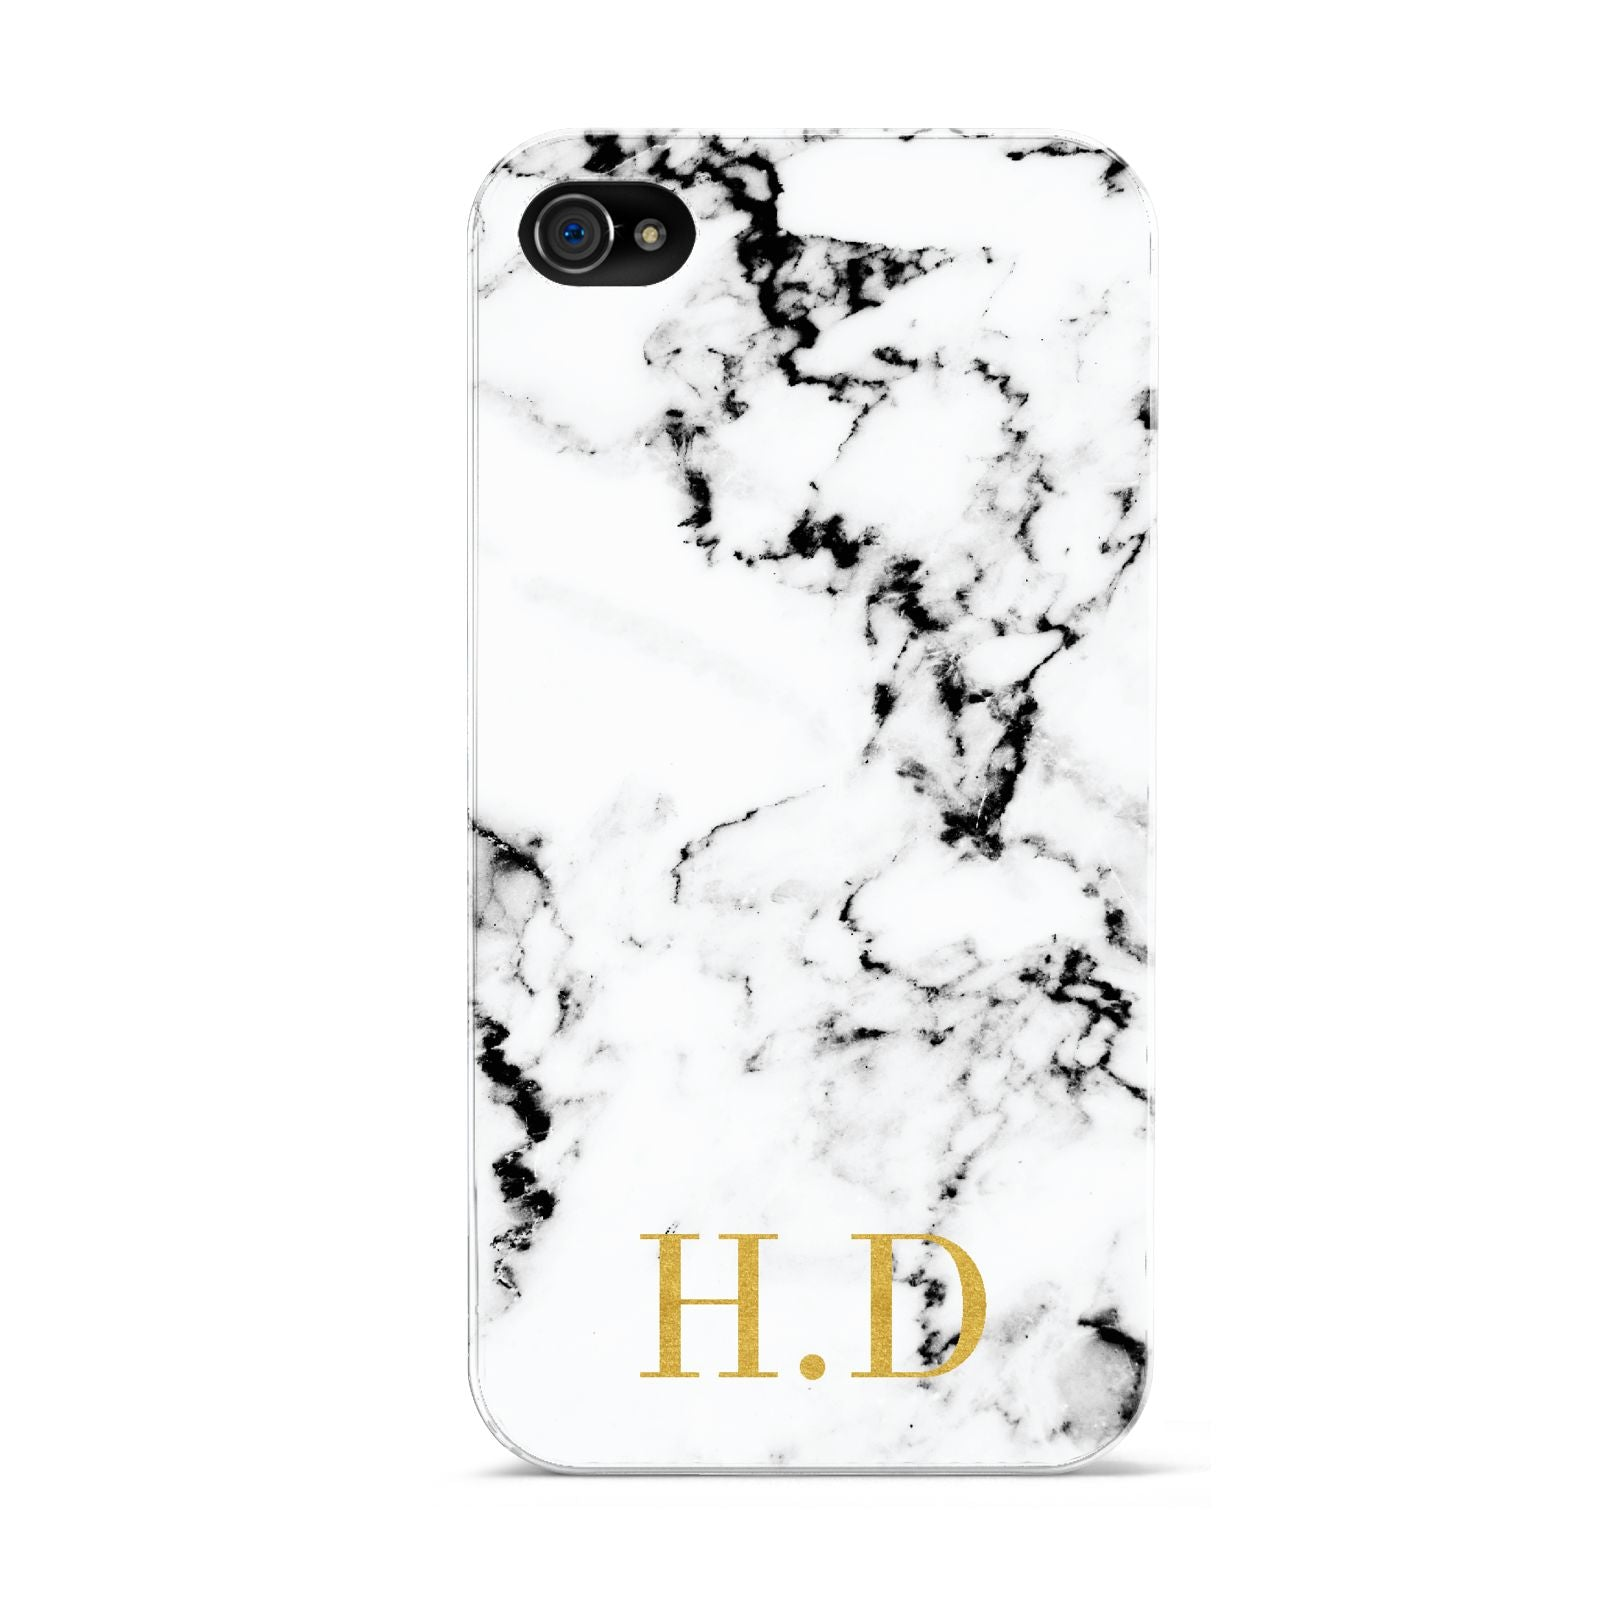 Personalised Gold Initials Marble New Apple iPhone 4s Case